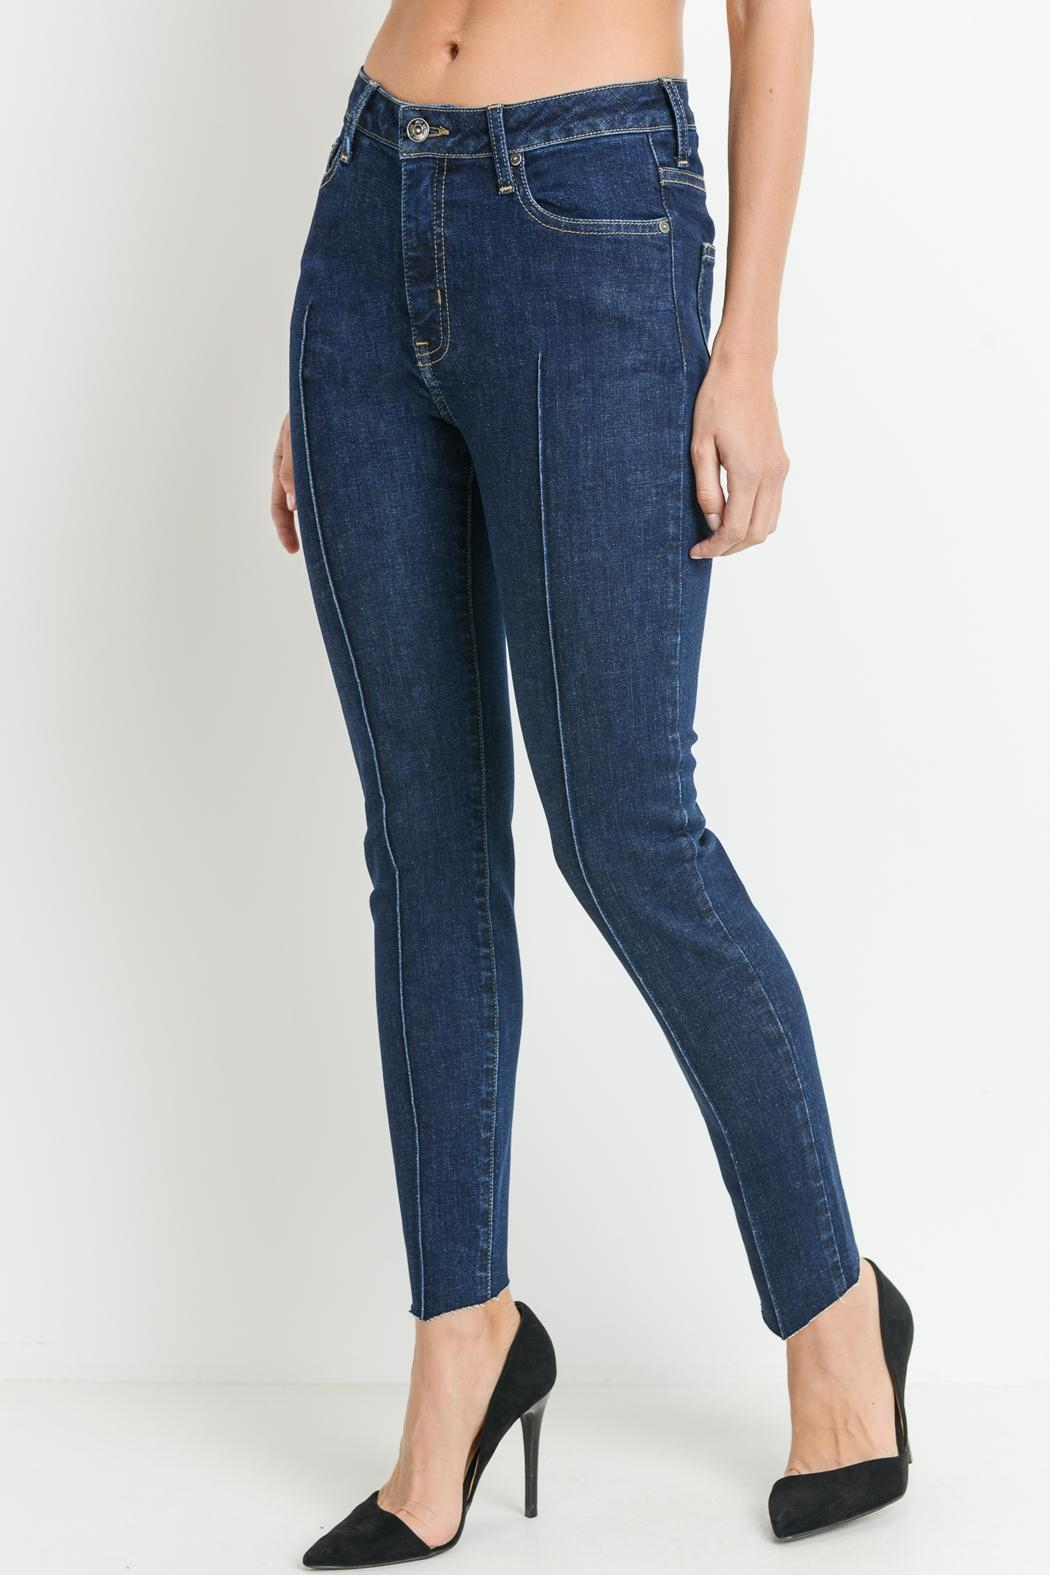 just black Pintuck Front Jeans - Main Image